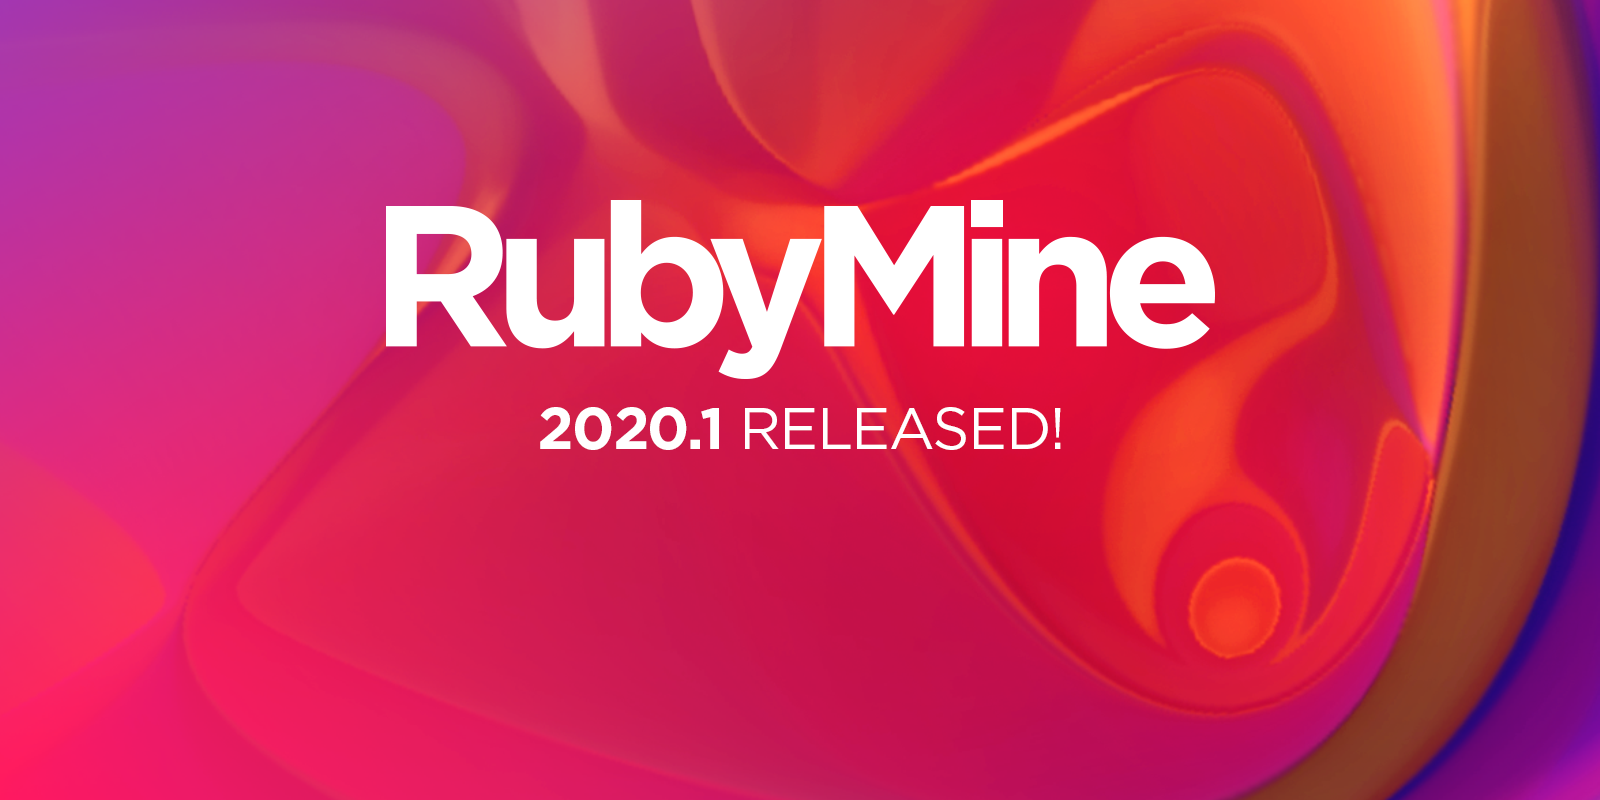 RubyMine 2020.1 released